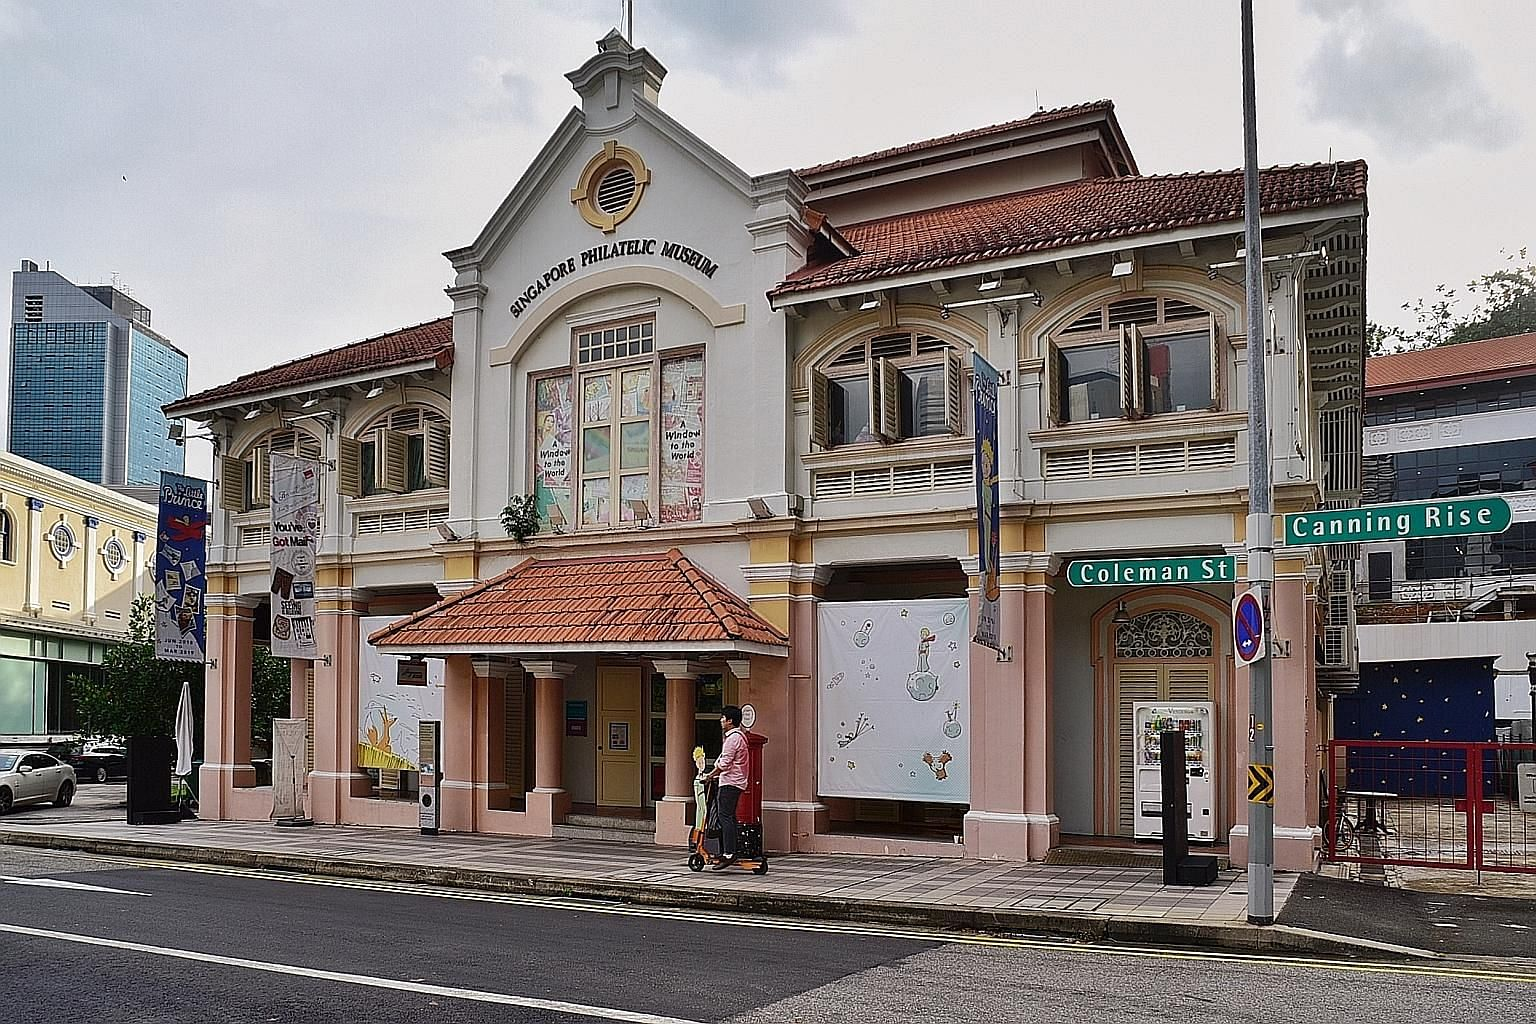 The National Heritage Board said the redevelopment of the Singapore Philatelic Museum (left) and the Peranakan Museum will refresh museum infrastructure, content and offerings to enhance visitors' experience.